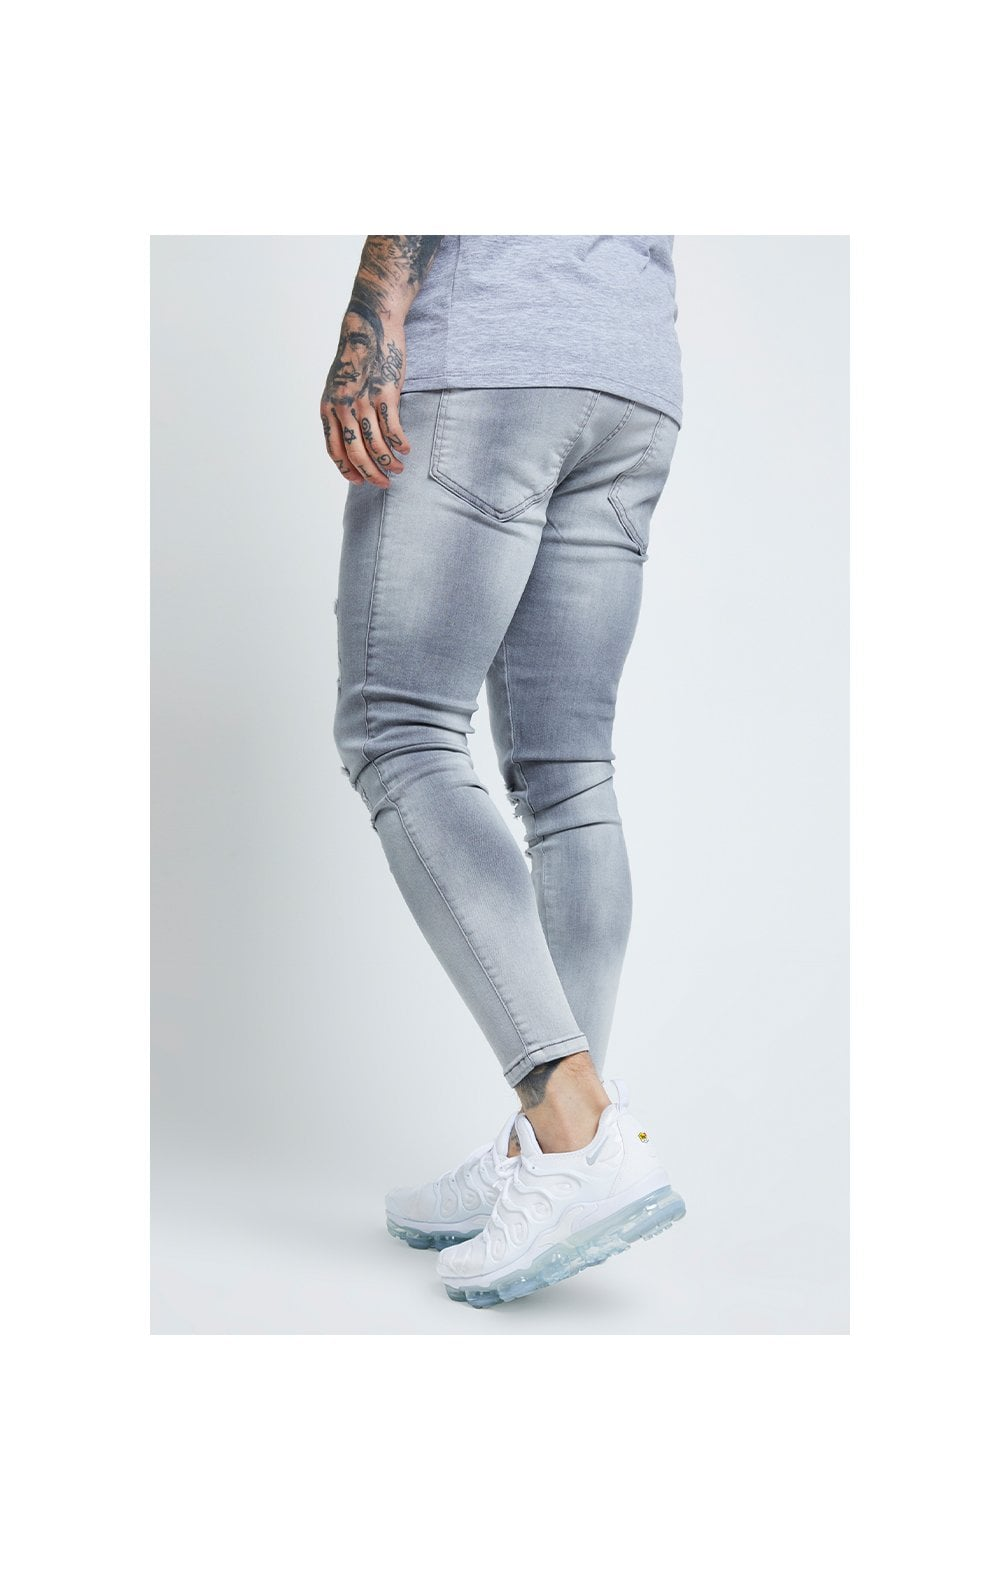 Load image into Gallery viewer, SikSilk Distressed Skinny Jeans – Washed Grey (3)